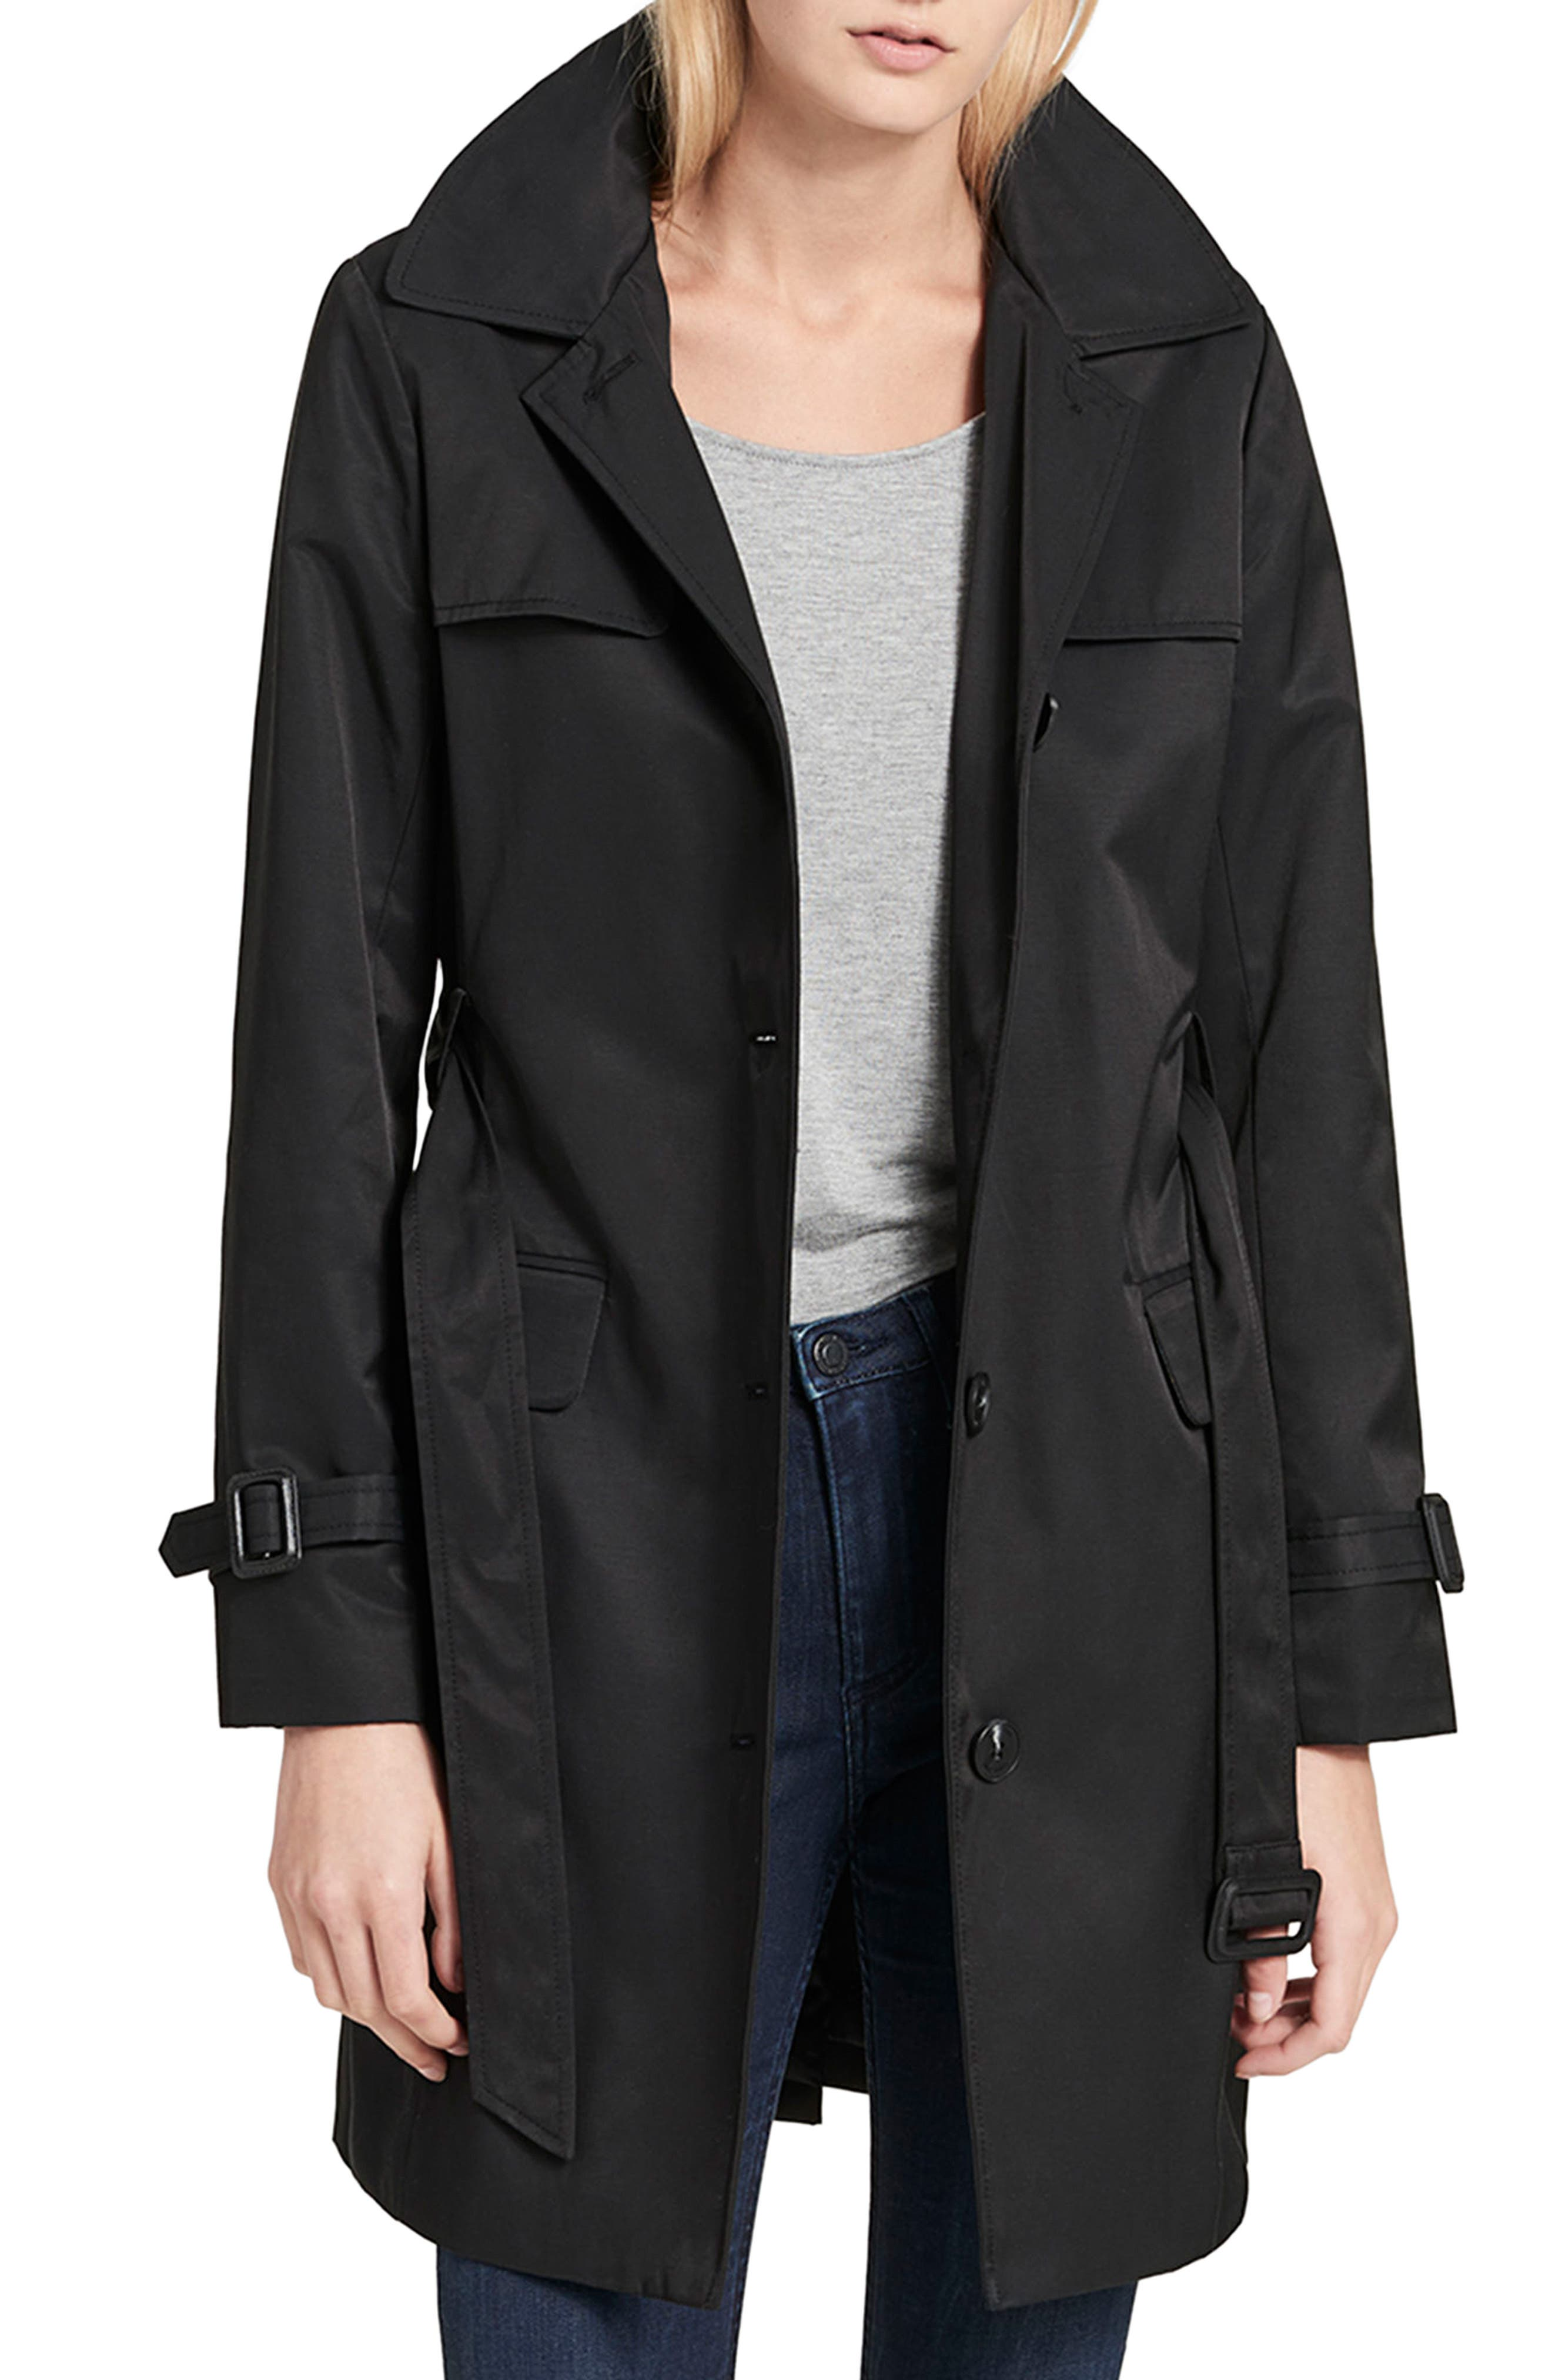 Alternate Image 1 Selected - Calvin Klein Water Resistant Belted Trench Coat